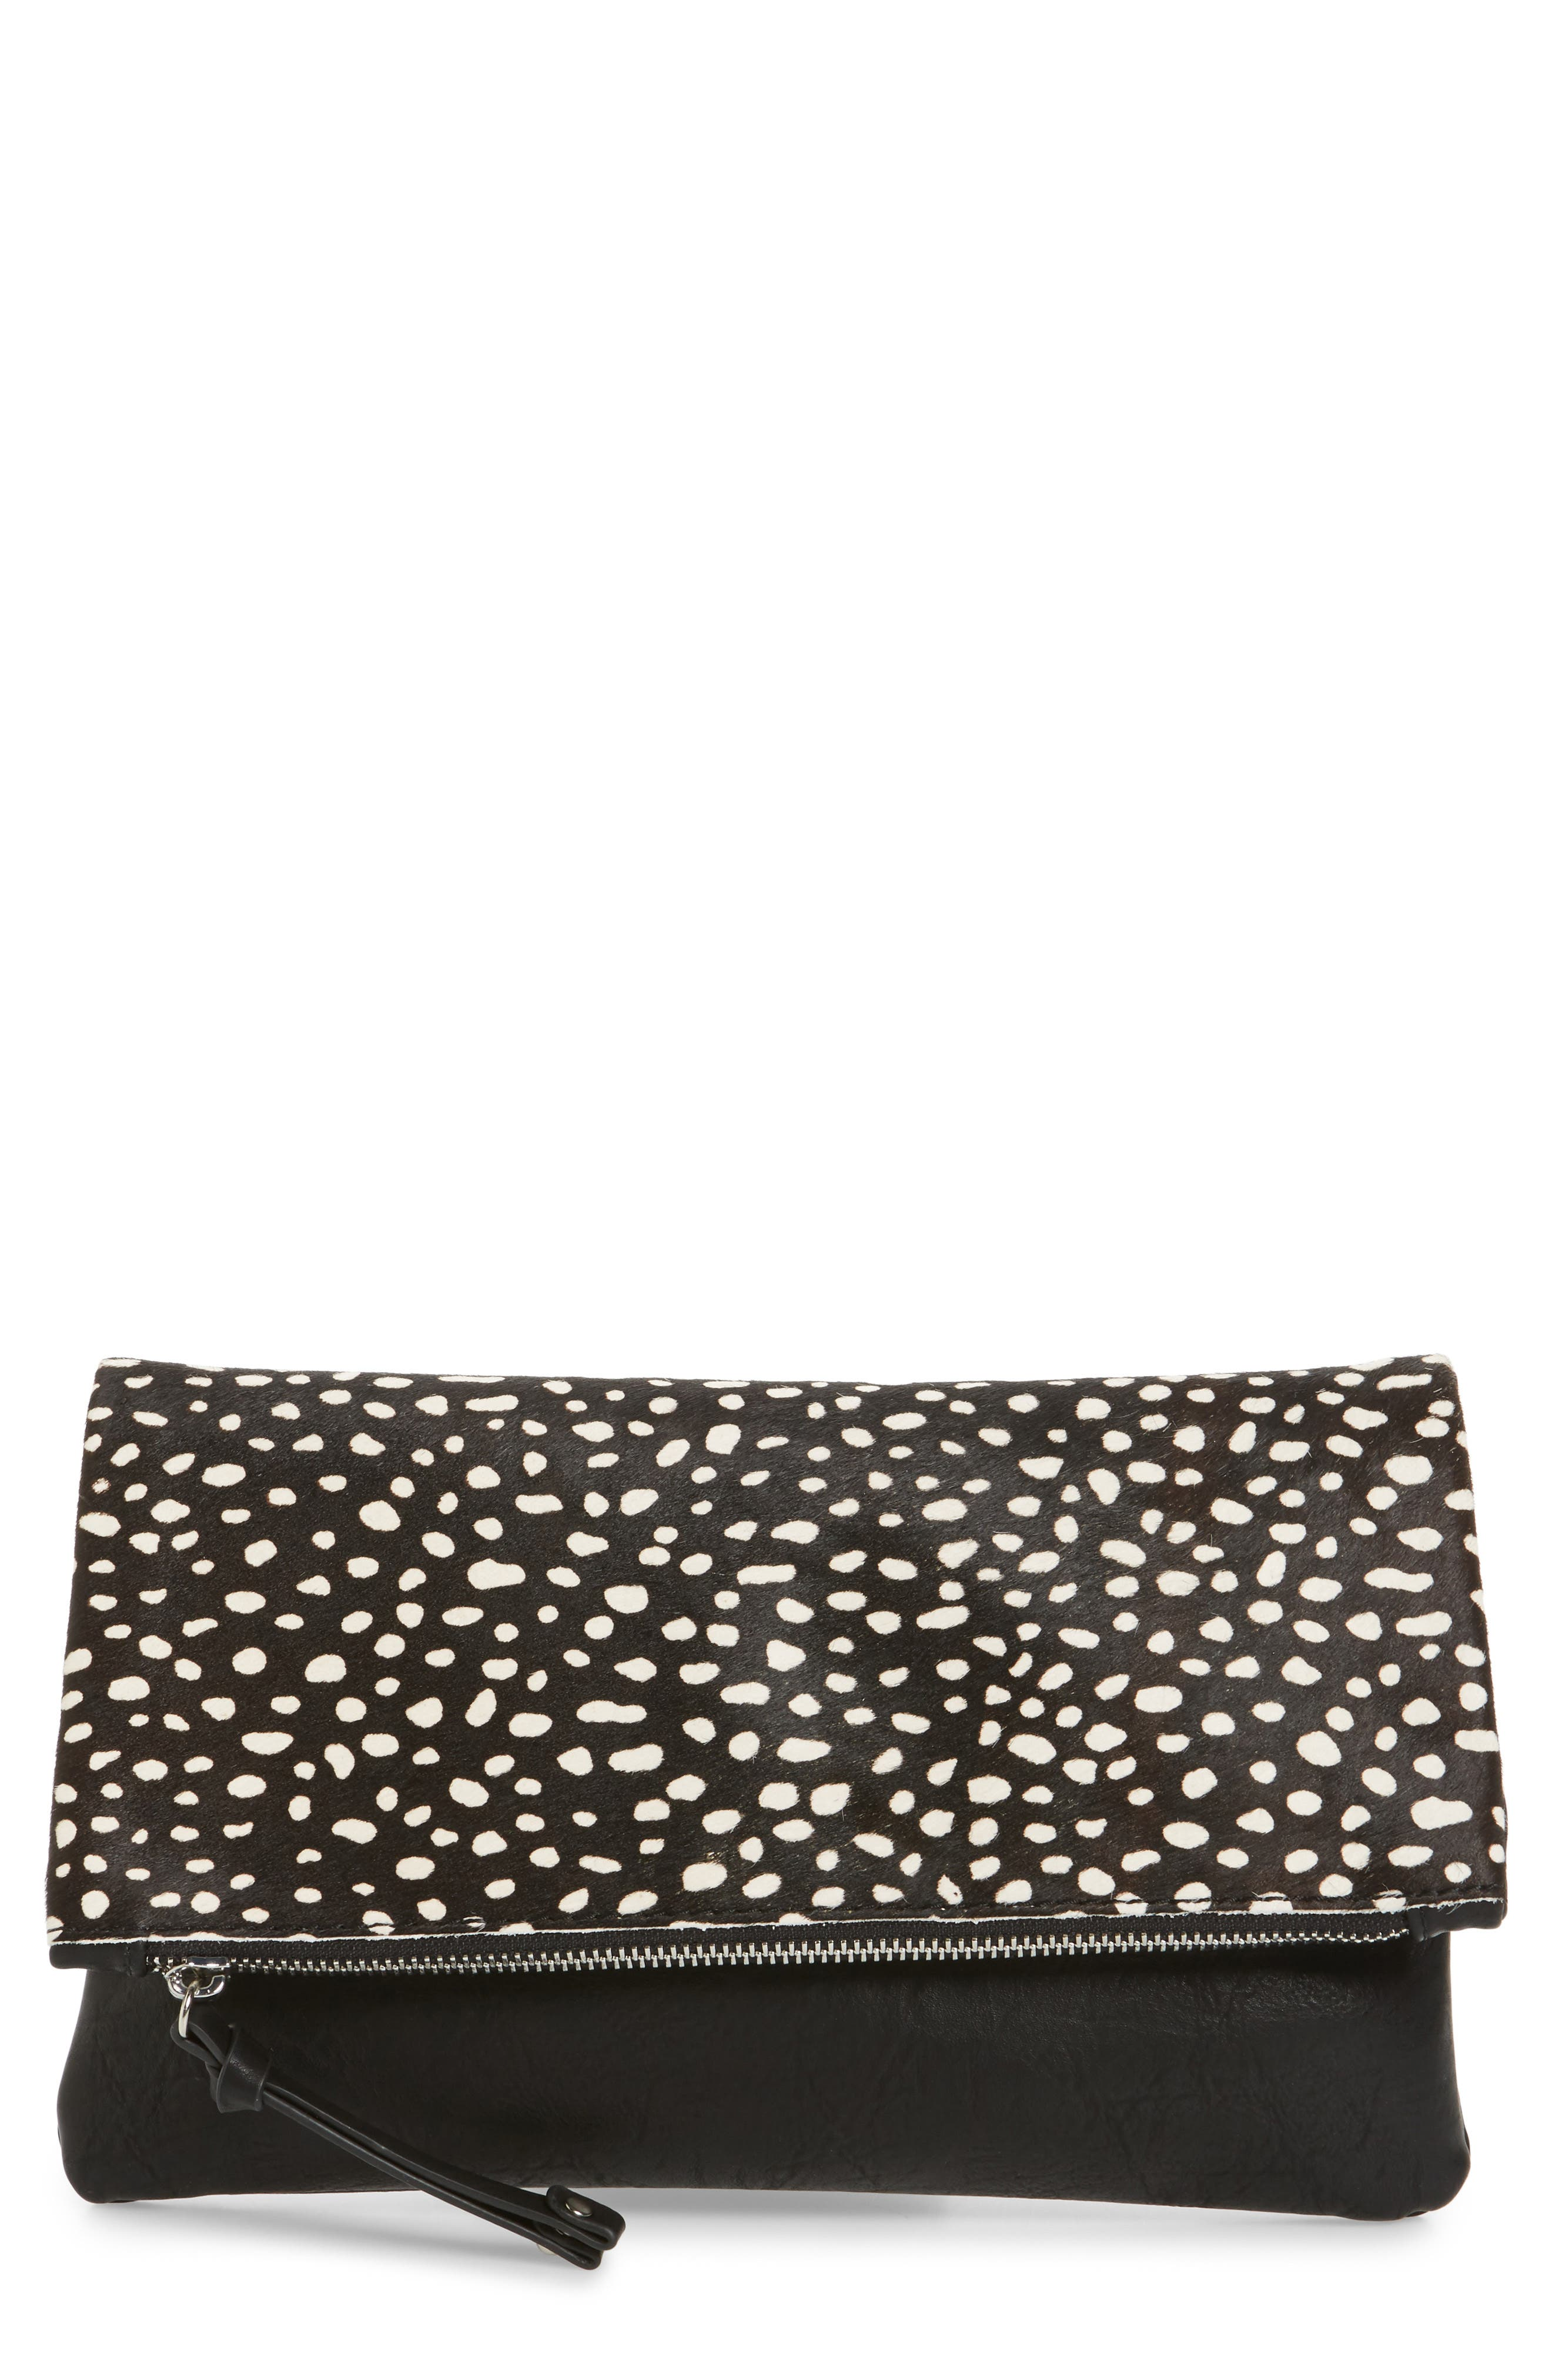 Sole Society 'Marlena' Faux Leather Foldover Clutch